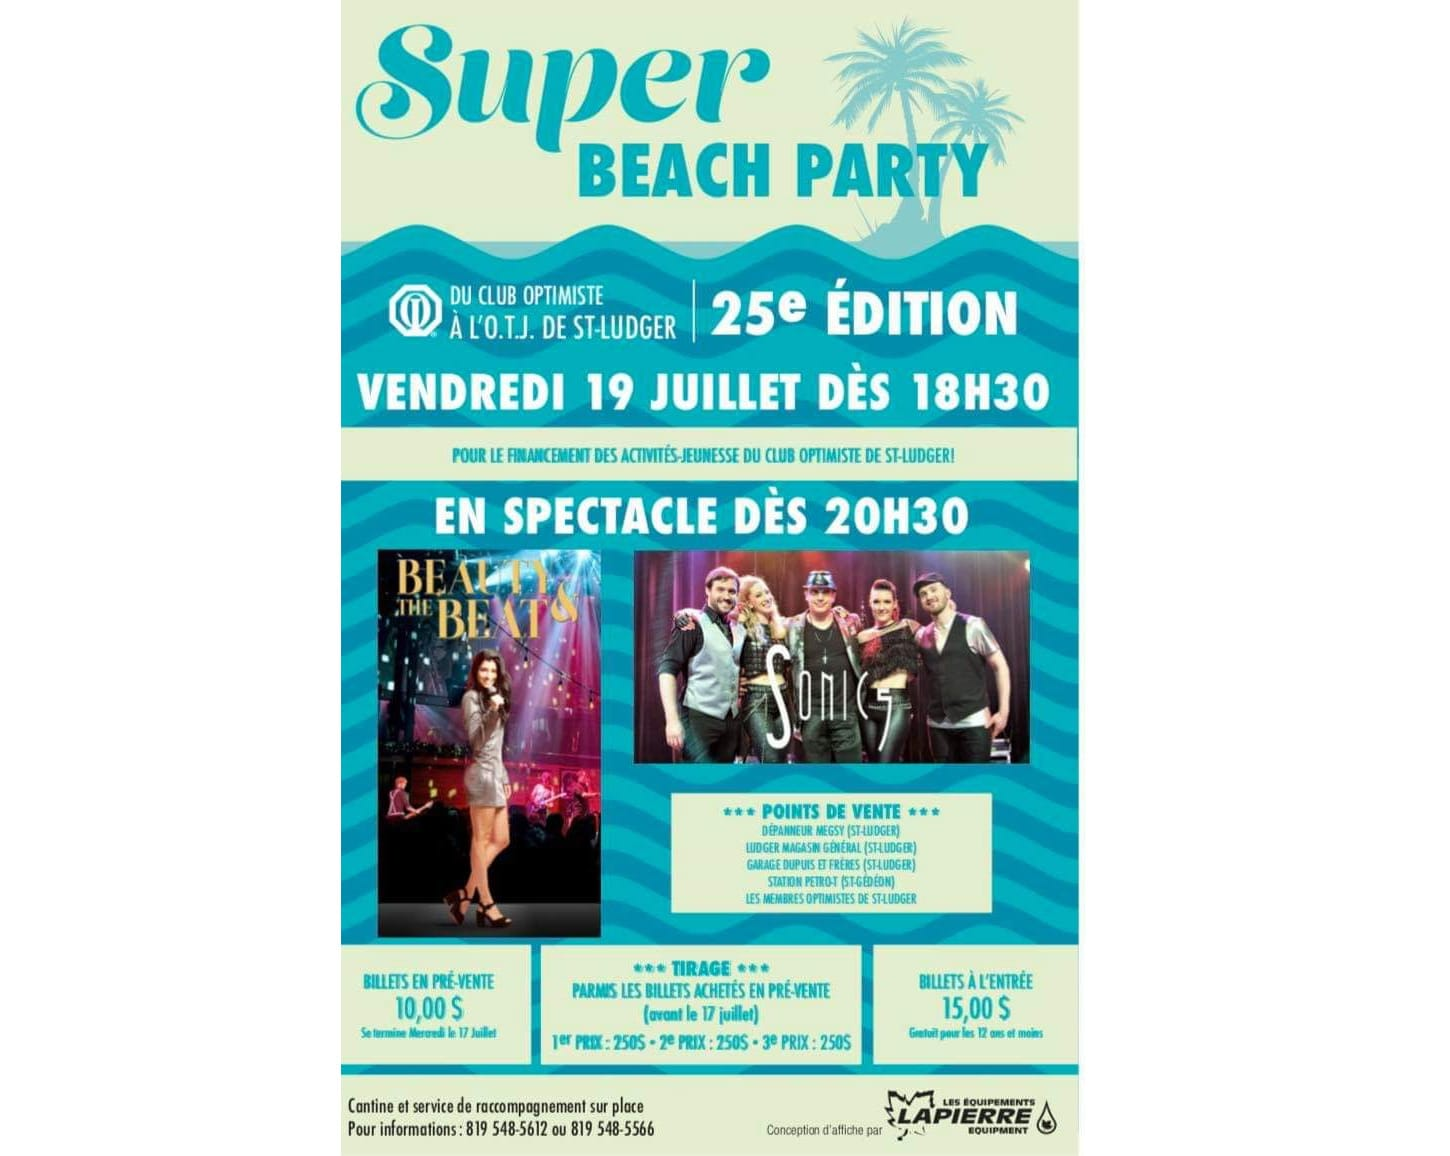 Super beach party